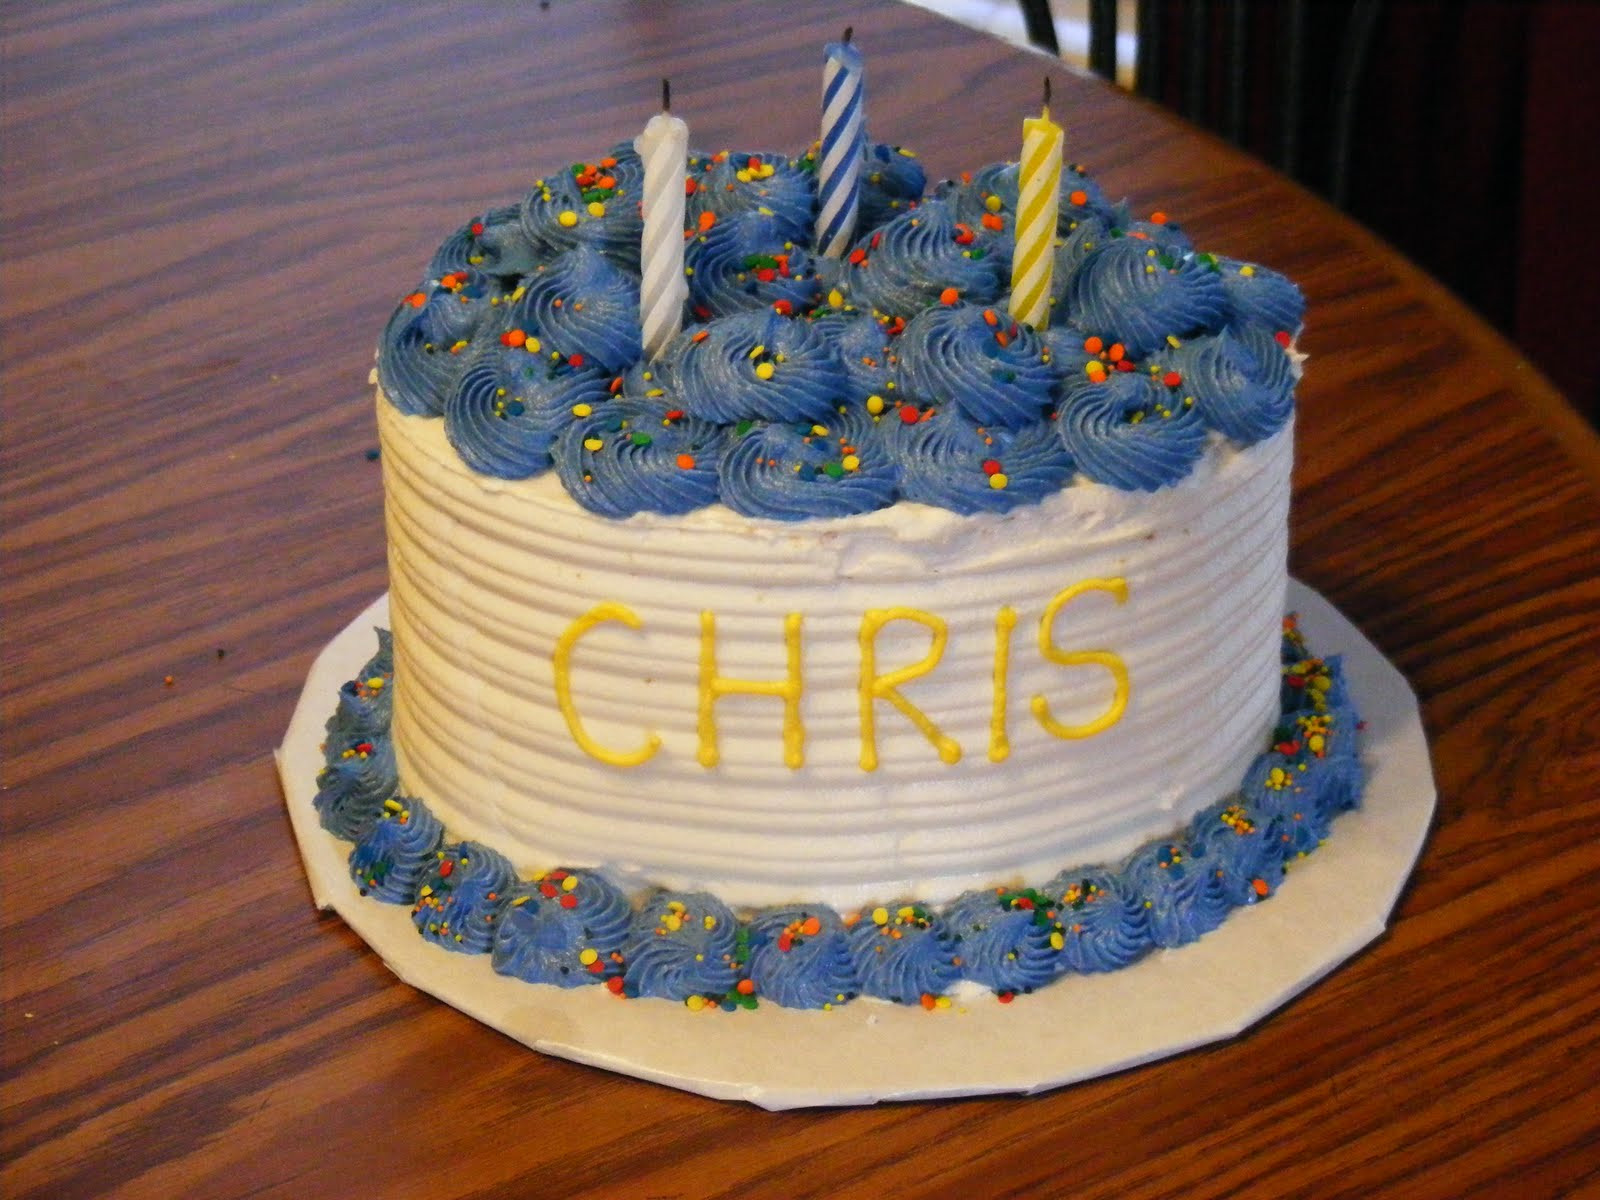 Best ideas about Image Birthday Cake . Save or Pin Chris Birthday Cakes Now.